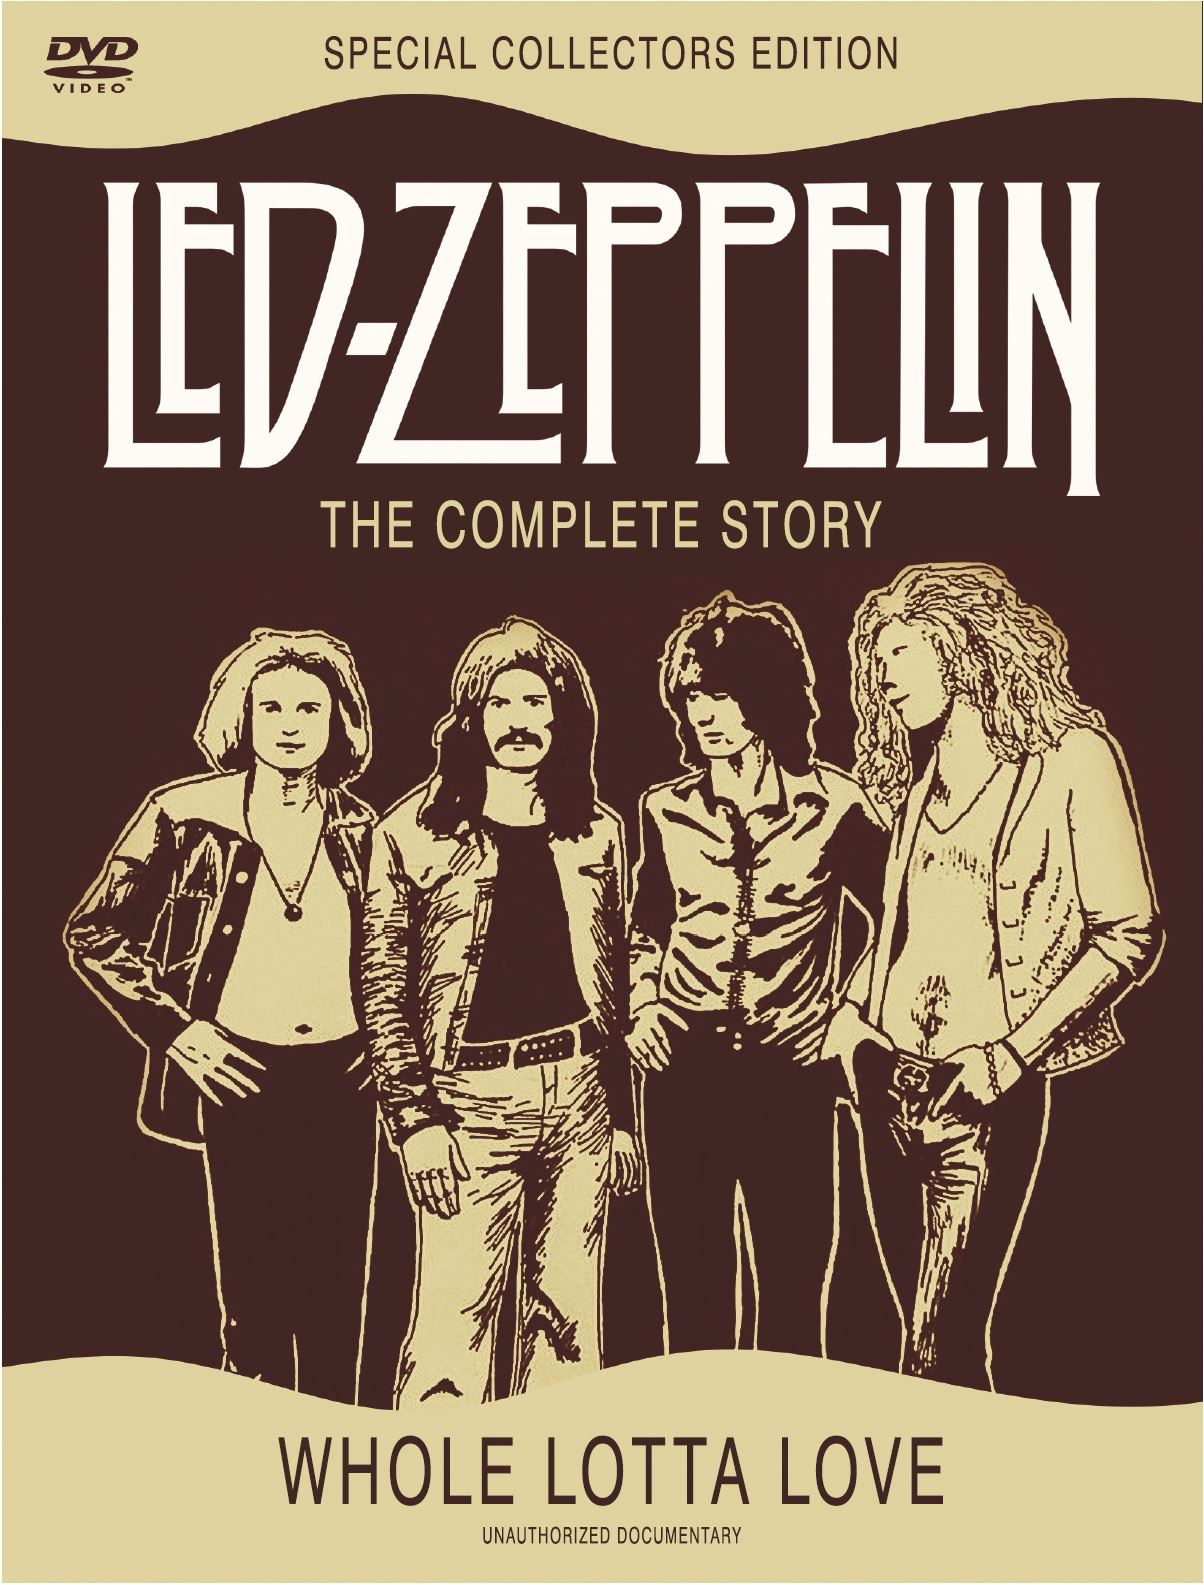 Led Zeppelin: The Complete Story - Whole Lotta Love